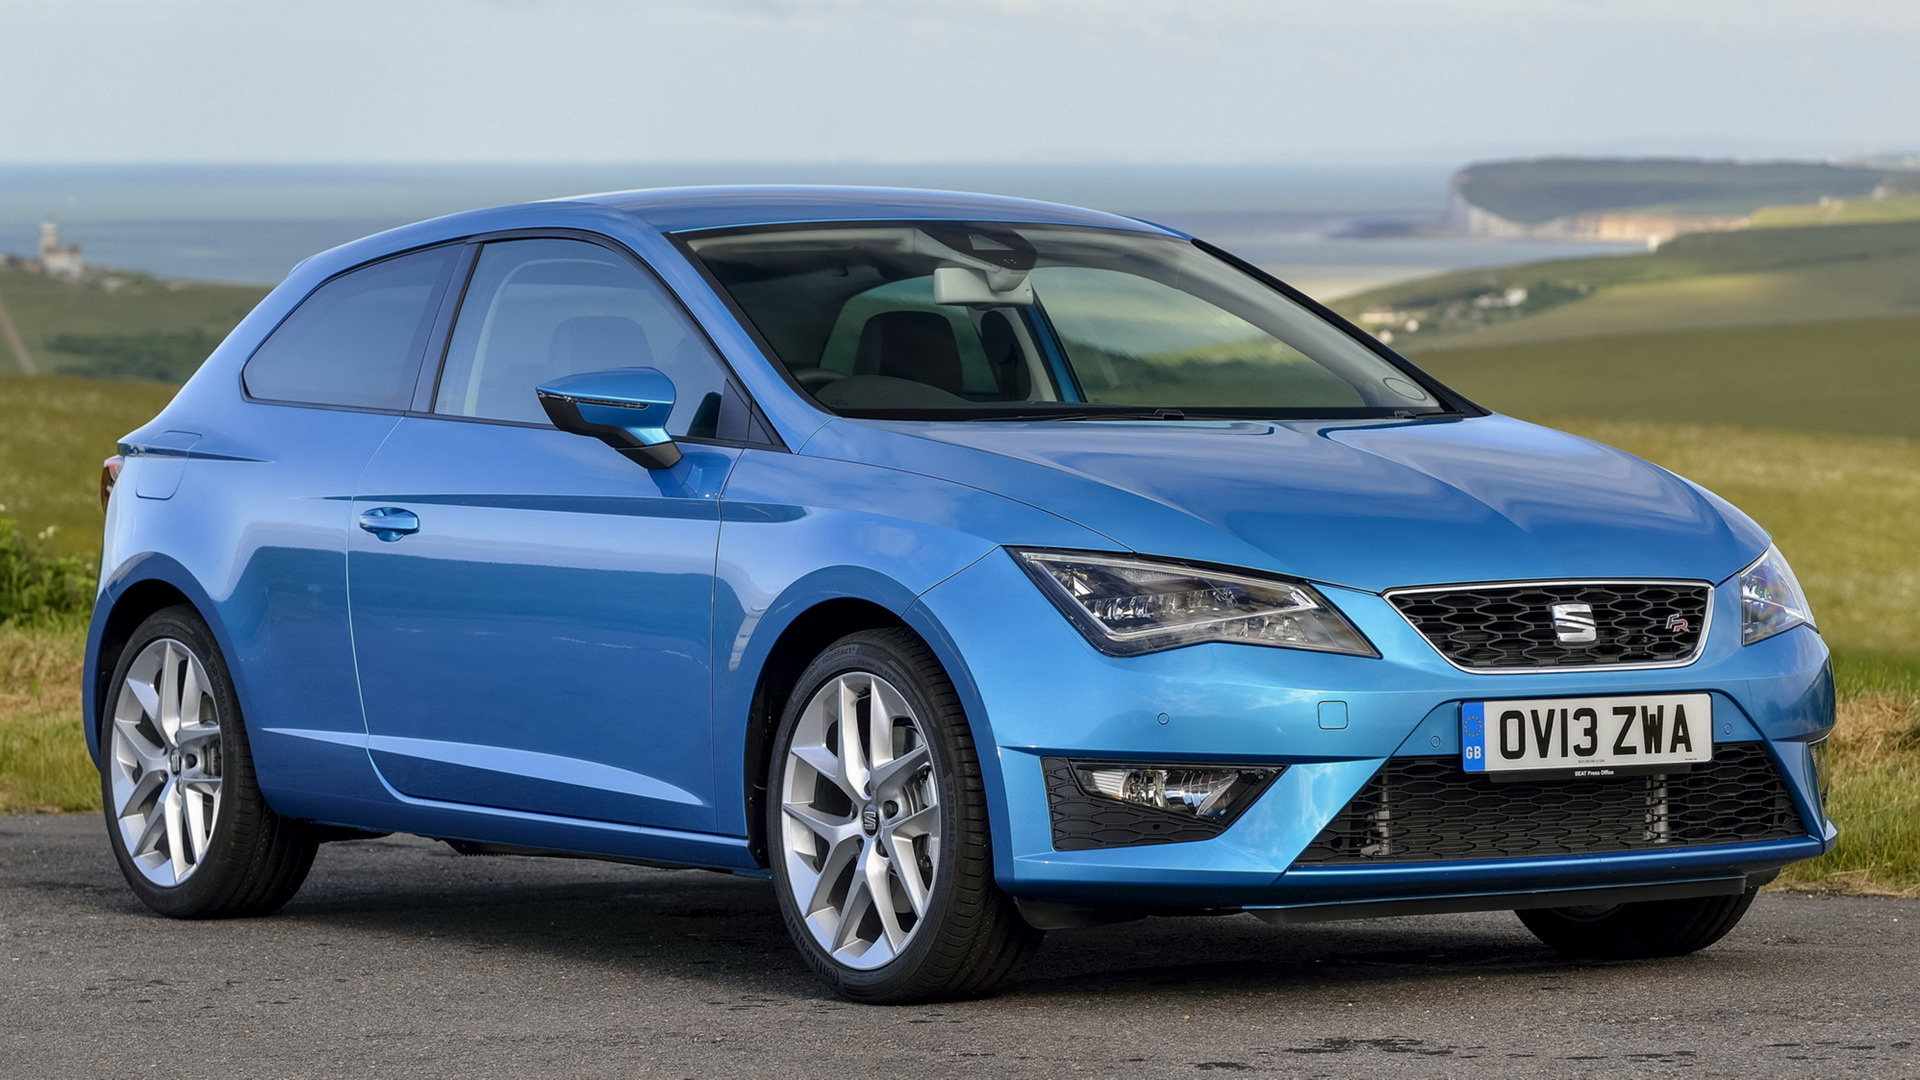 seat leon sc fr 2013 uk wallpapers and hd images car pixel. Black Bedroom Furniture Sets. Home Design Ideas